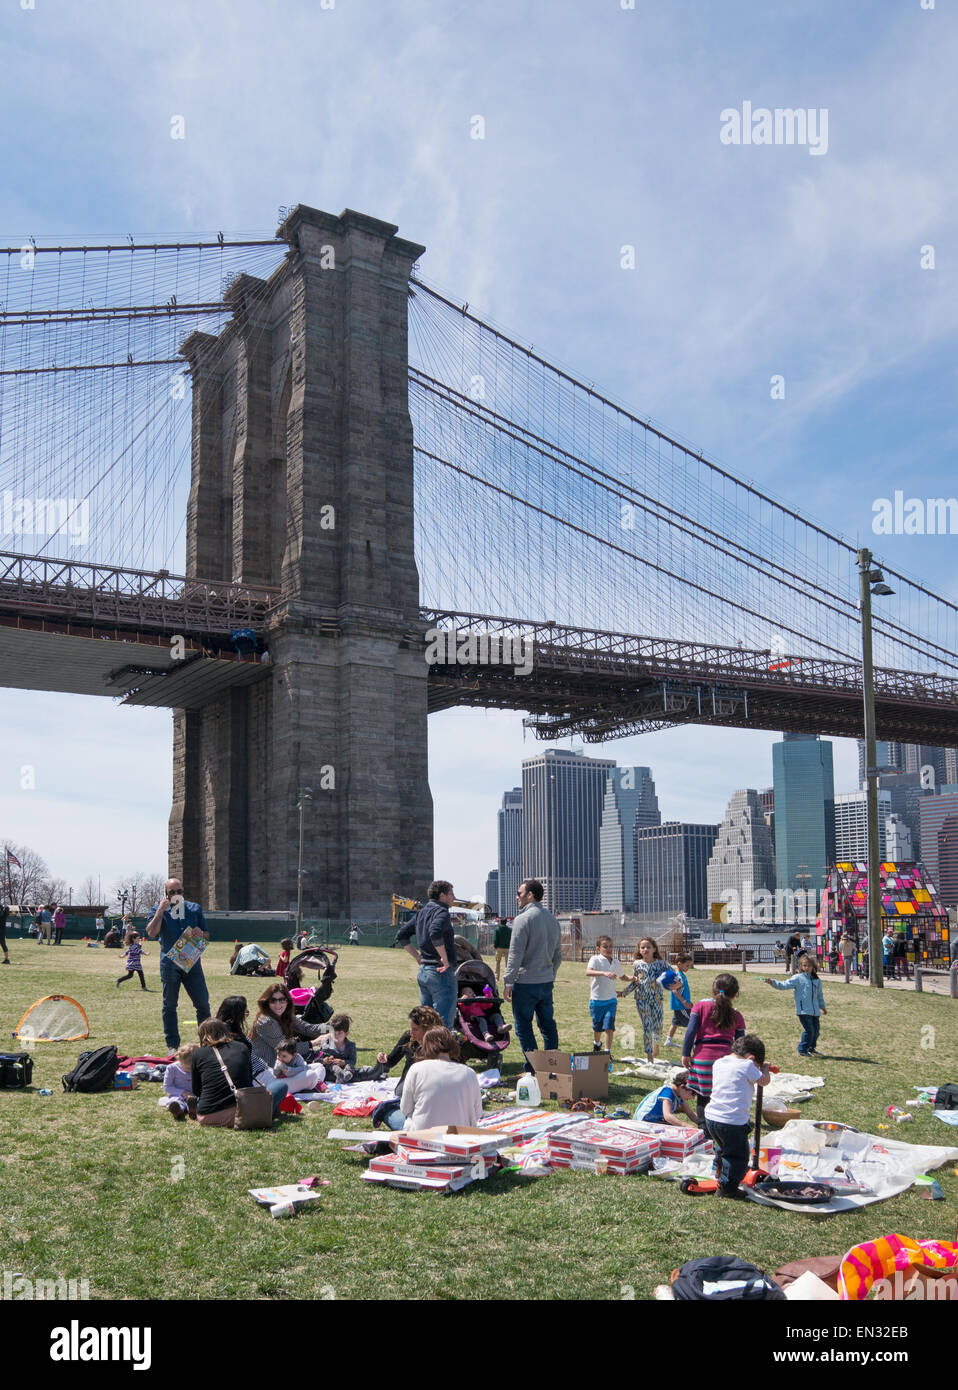 Pique-nique en famille Pont de Brooklyn Park, NYC, USA Photo Stock